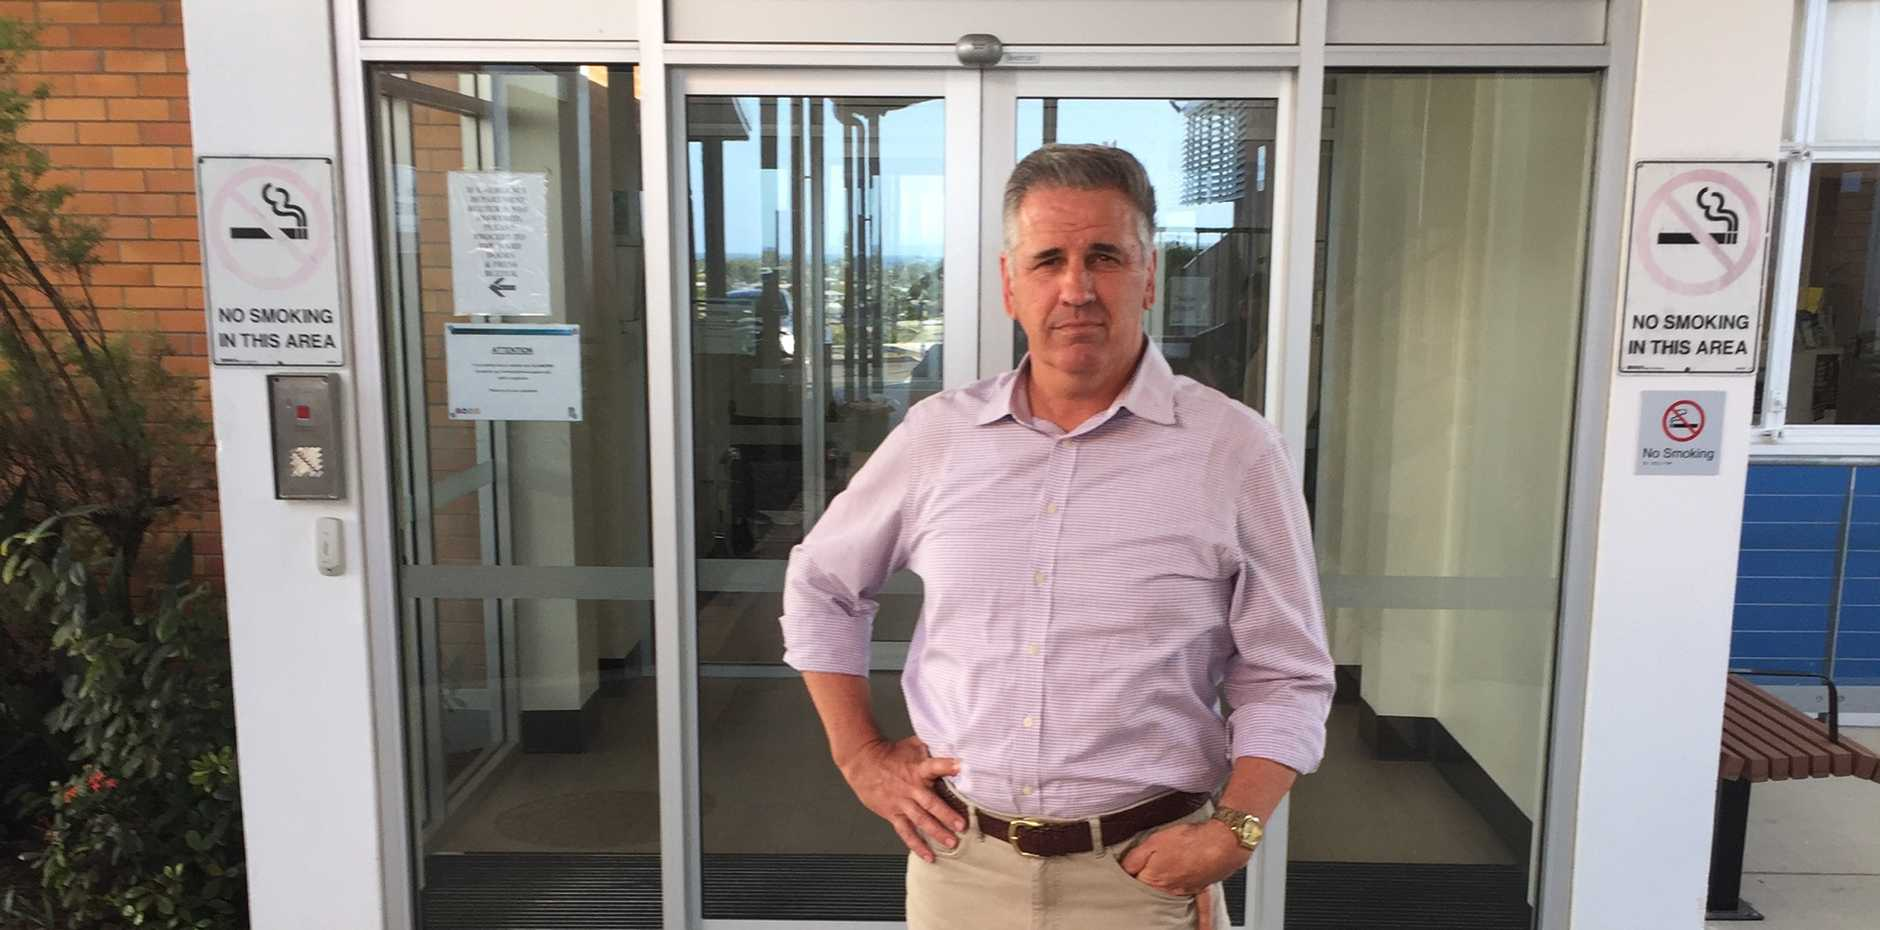 WAITING: Burdekin MP Dale Last has slammed the Queensland Health Minister over what he calls 'the stalling' of a CT scanner in Bowen,'